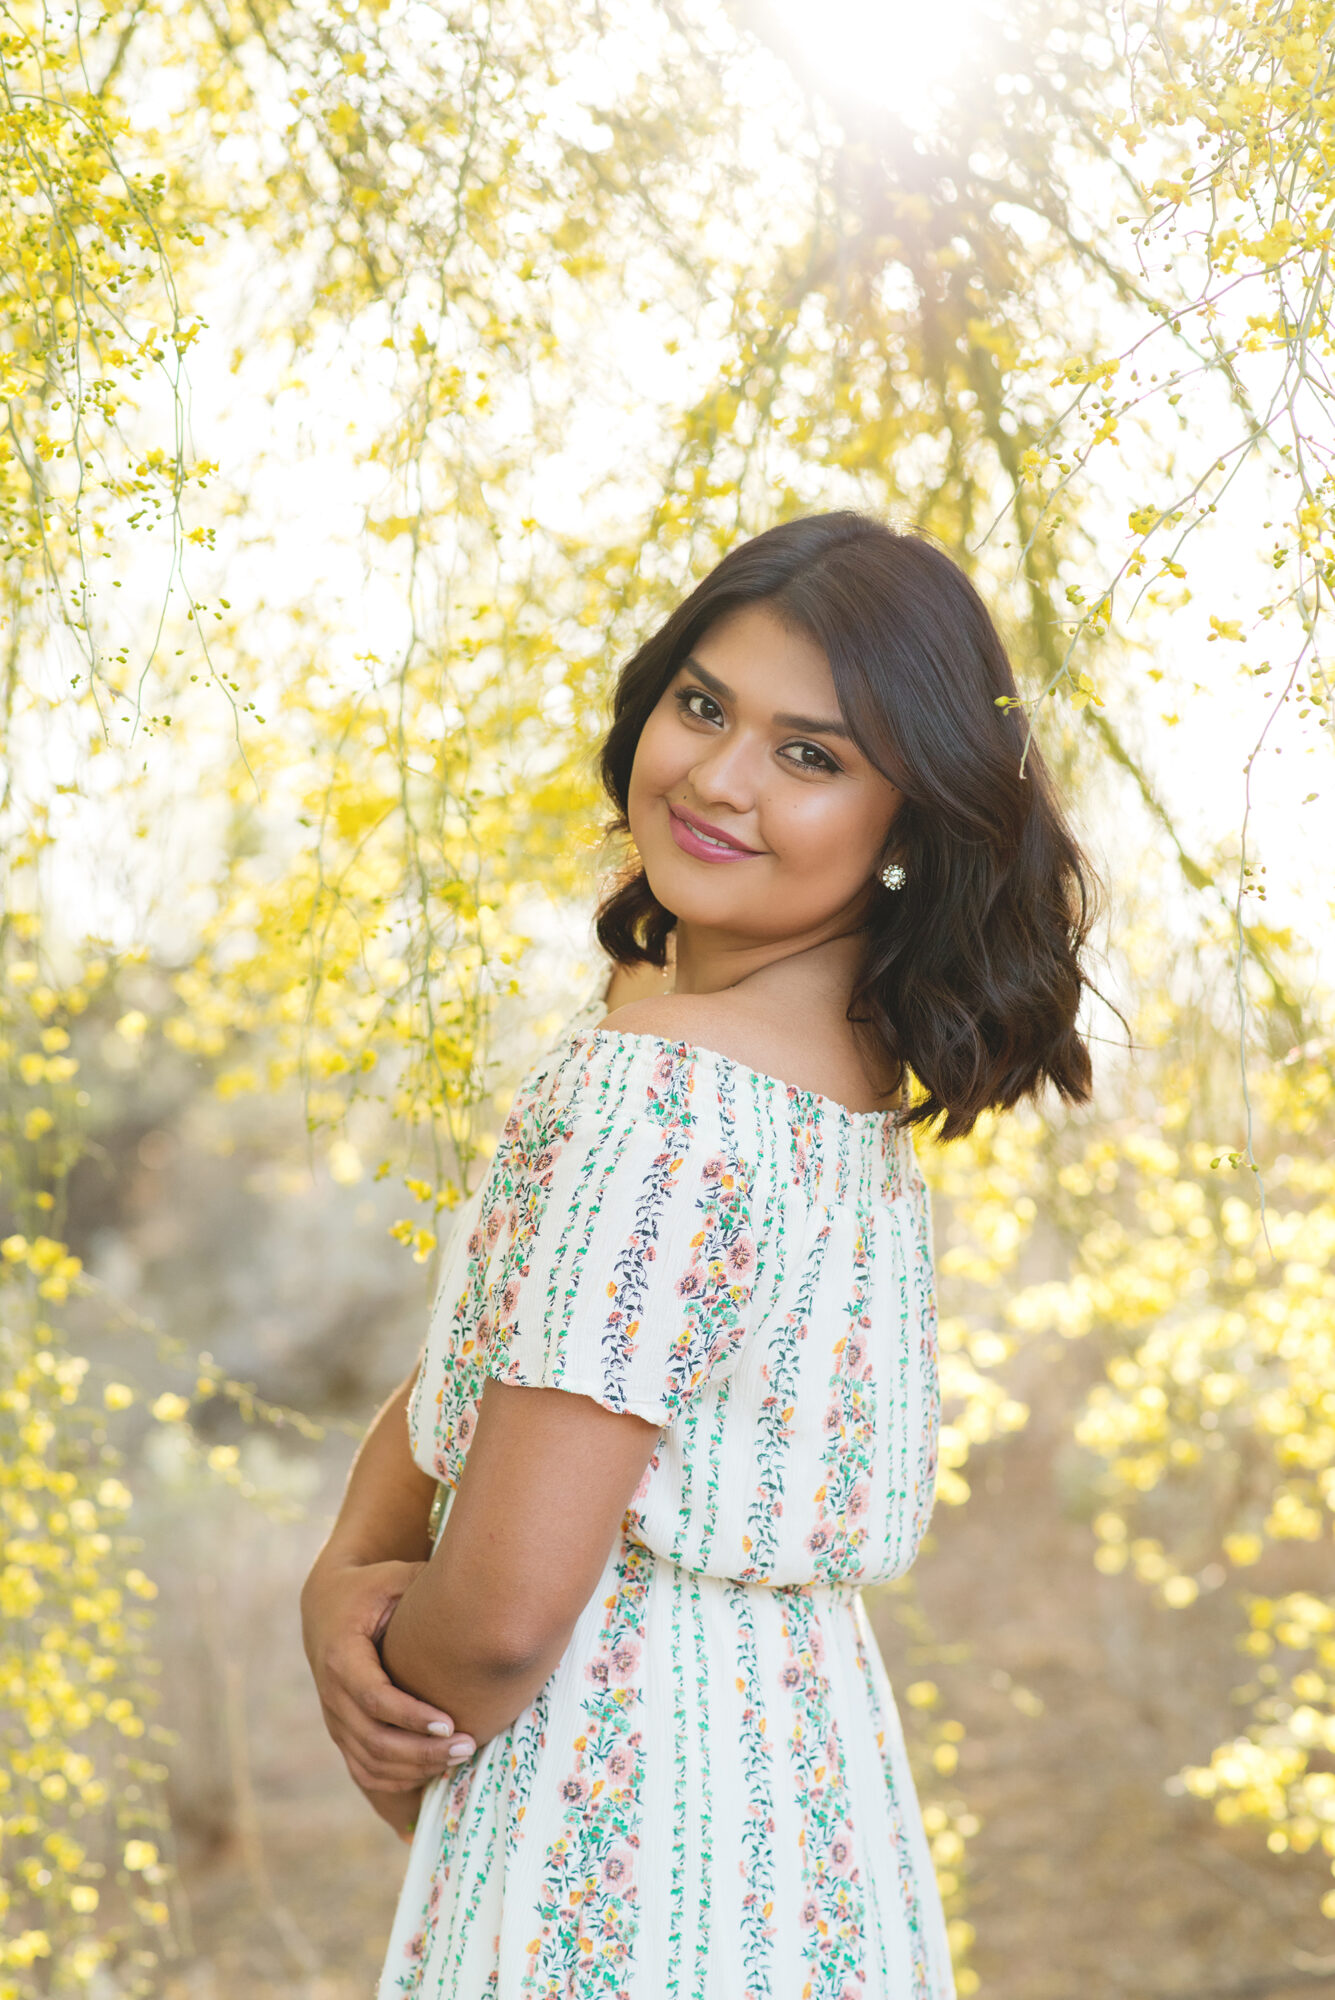 senior photos desert golden sunlit yellow palo verde | Reaj Roberts Photography